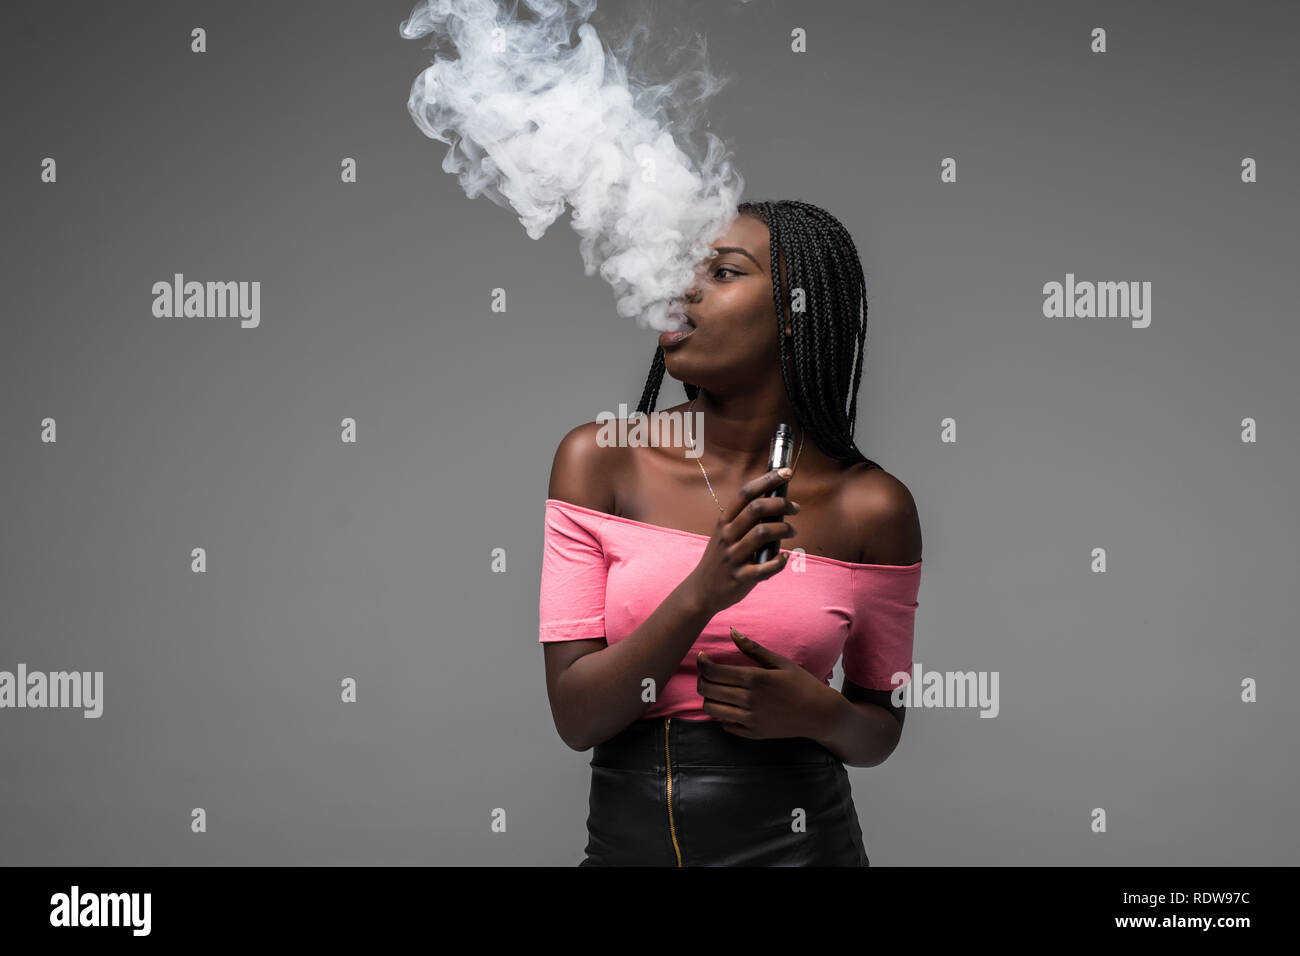 Young beauty african woman smoke vape, e-cigarette, on gray background - Stock Image